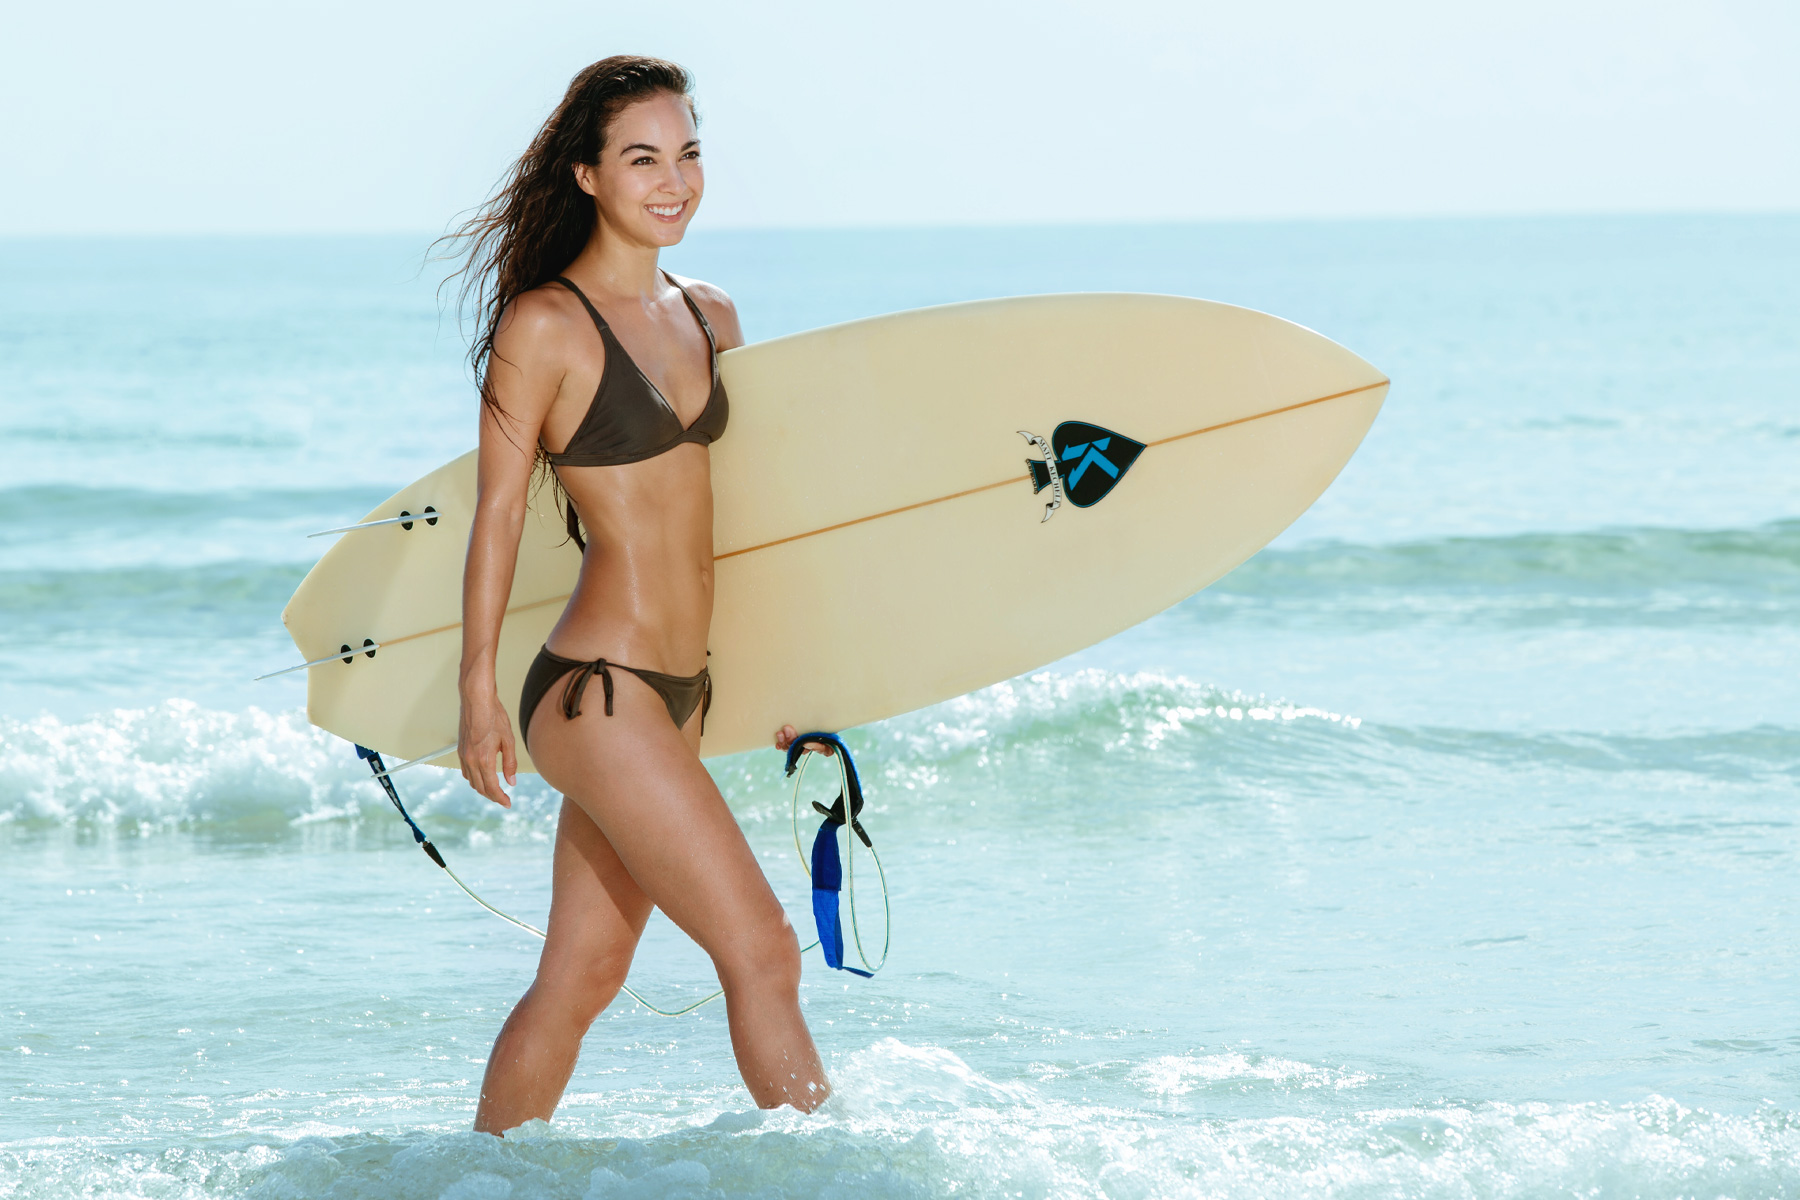 miami_lifestyle_beach_fitness_photography_david_gonzalez_surf_smailing_girl.jpg